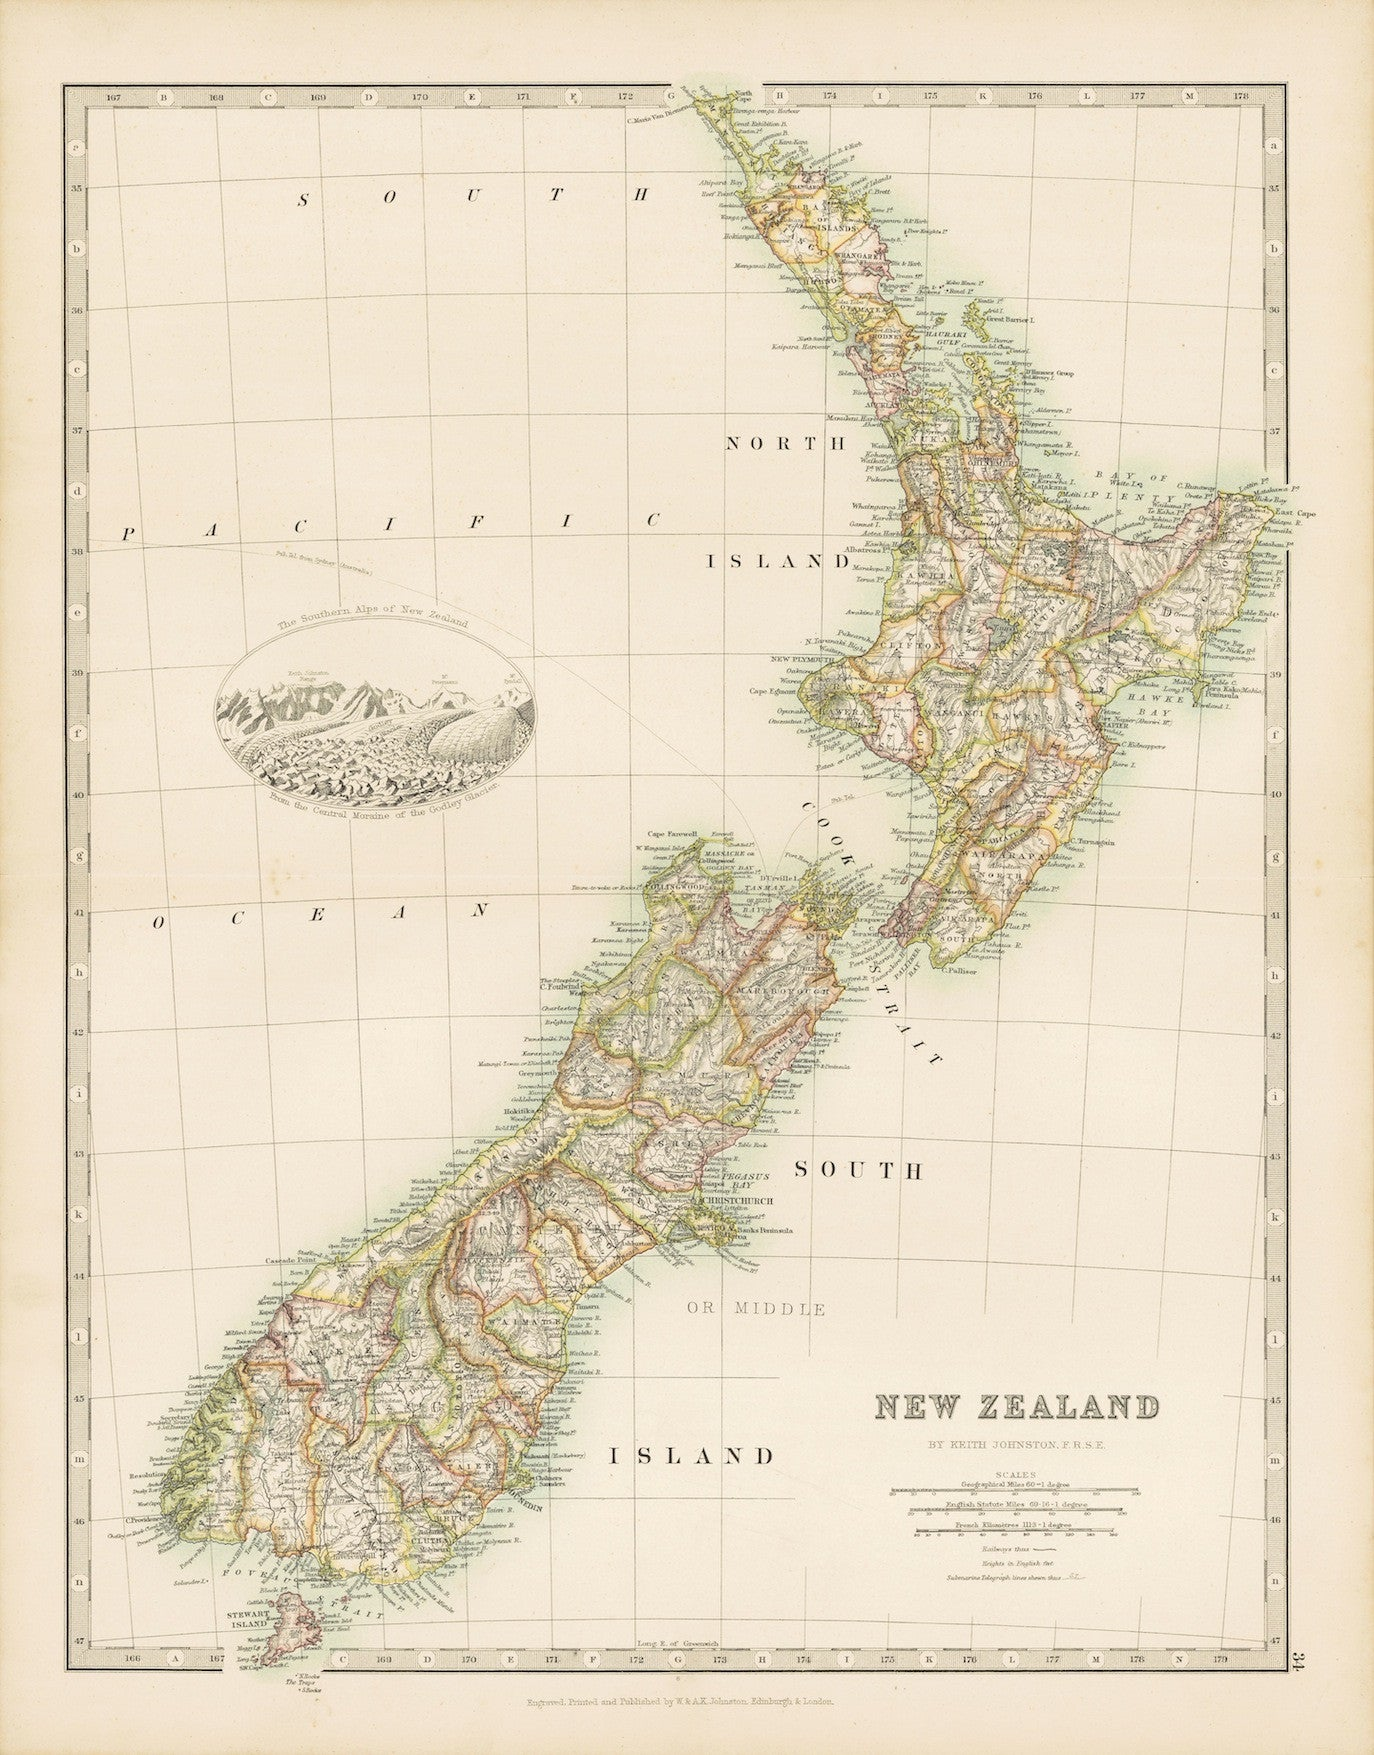 1893 Map of New Zealand (Reproduction)